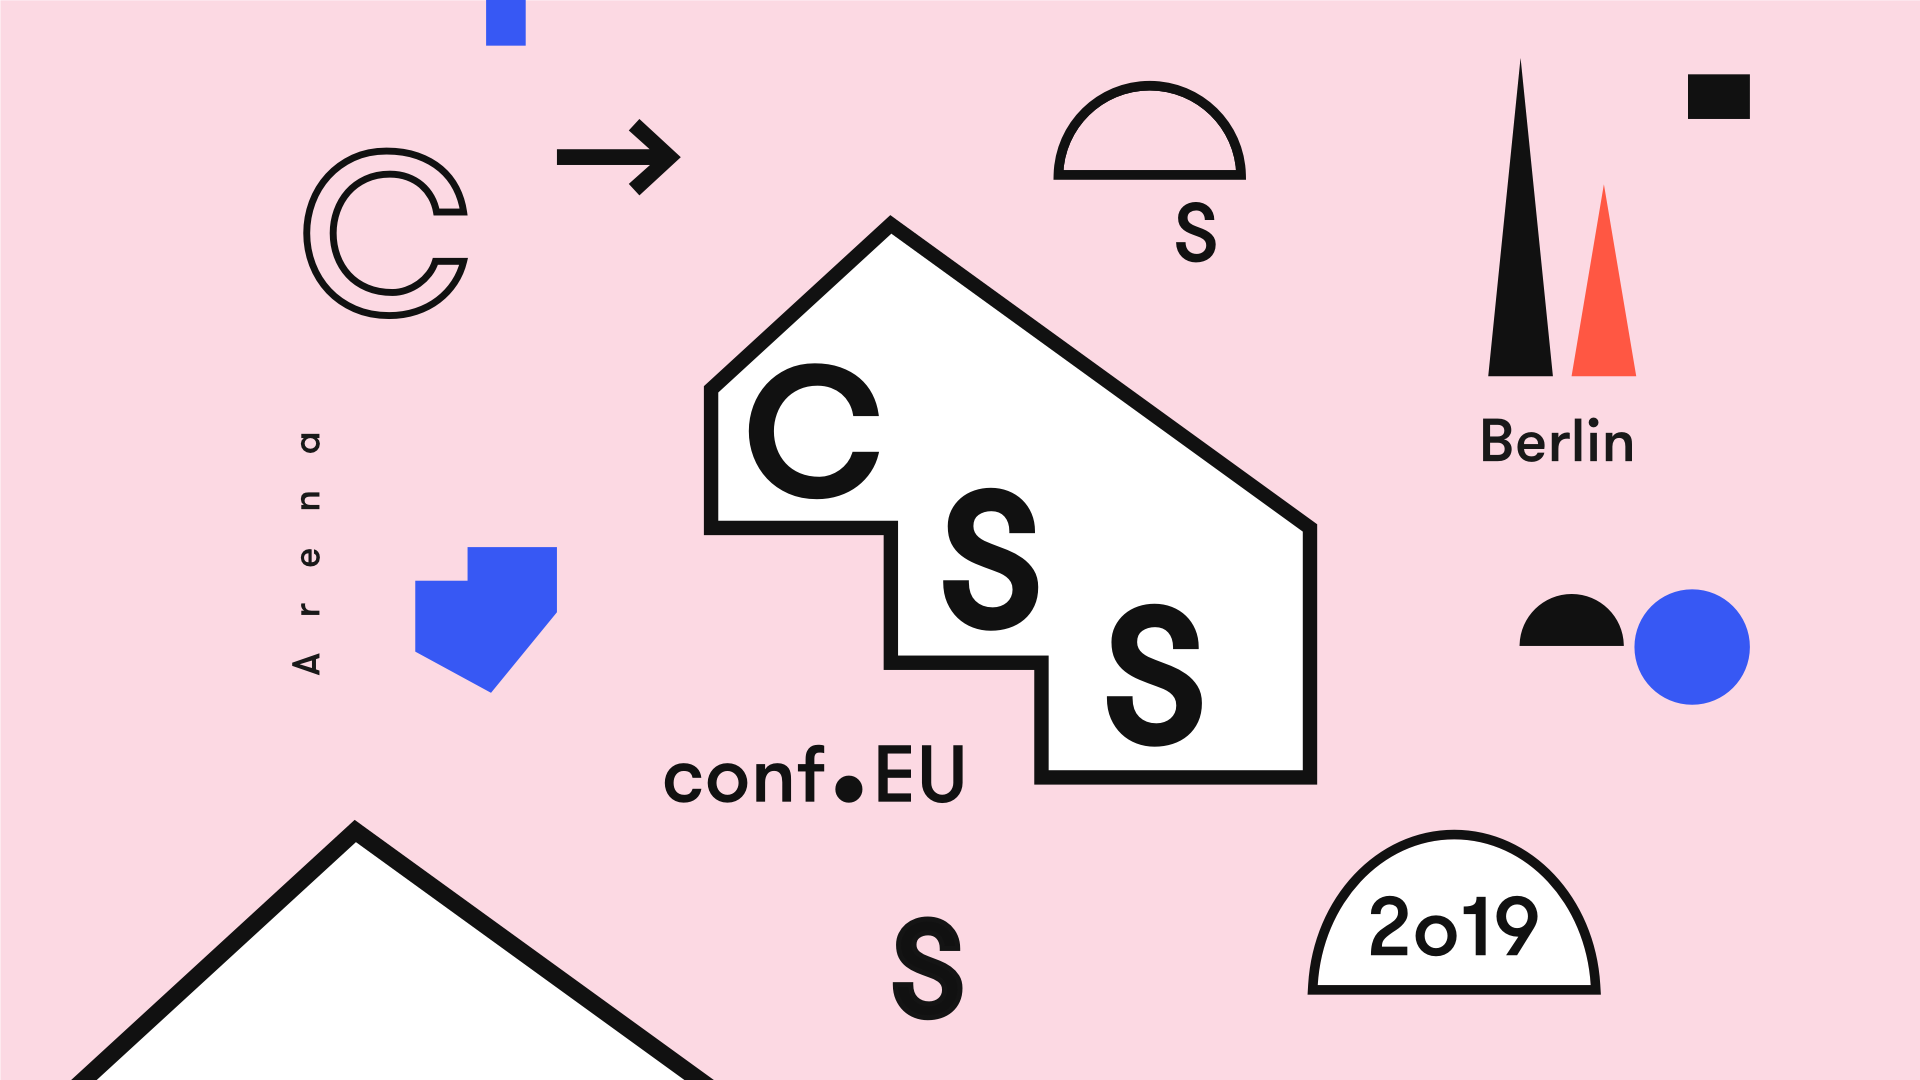 CSS Conf 2019 Berlin